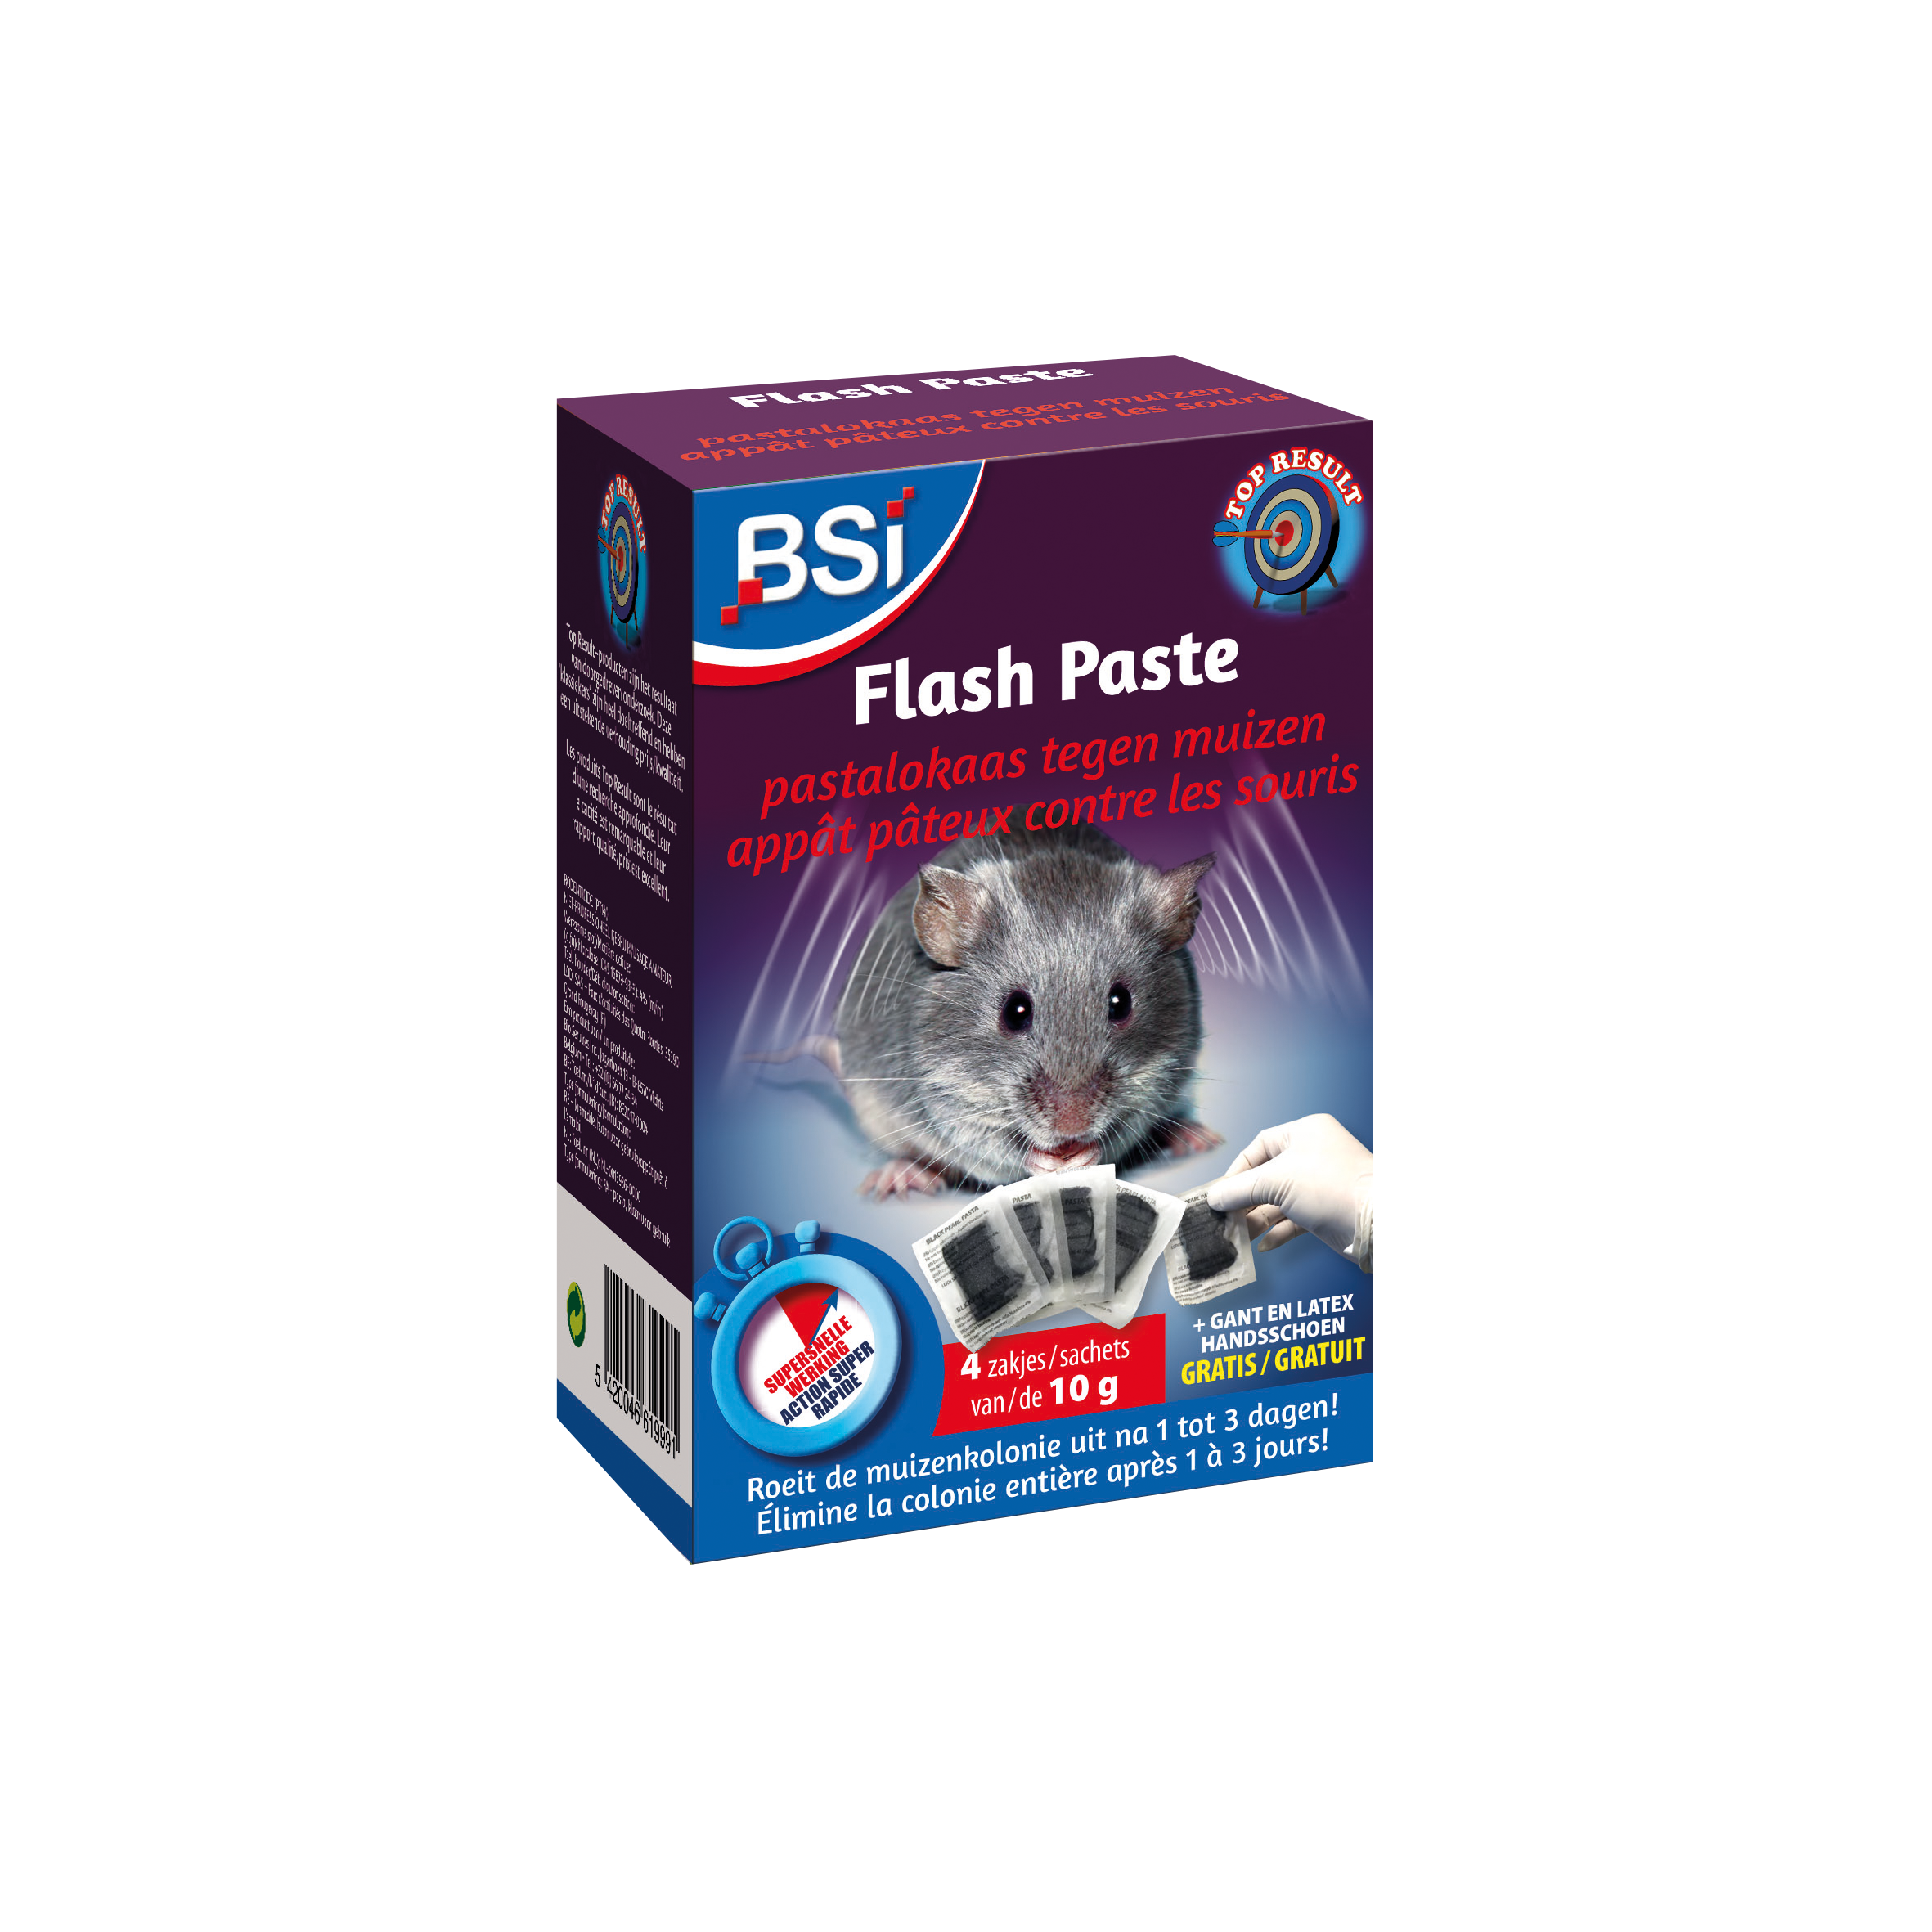 BSI Flash Paste 4 x 10 g image